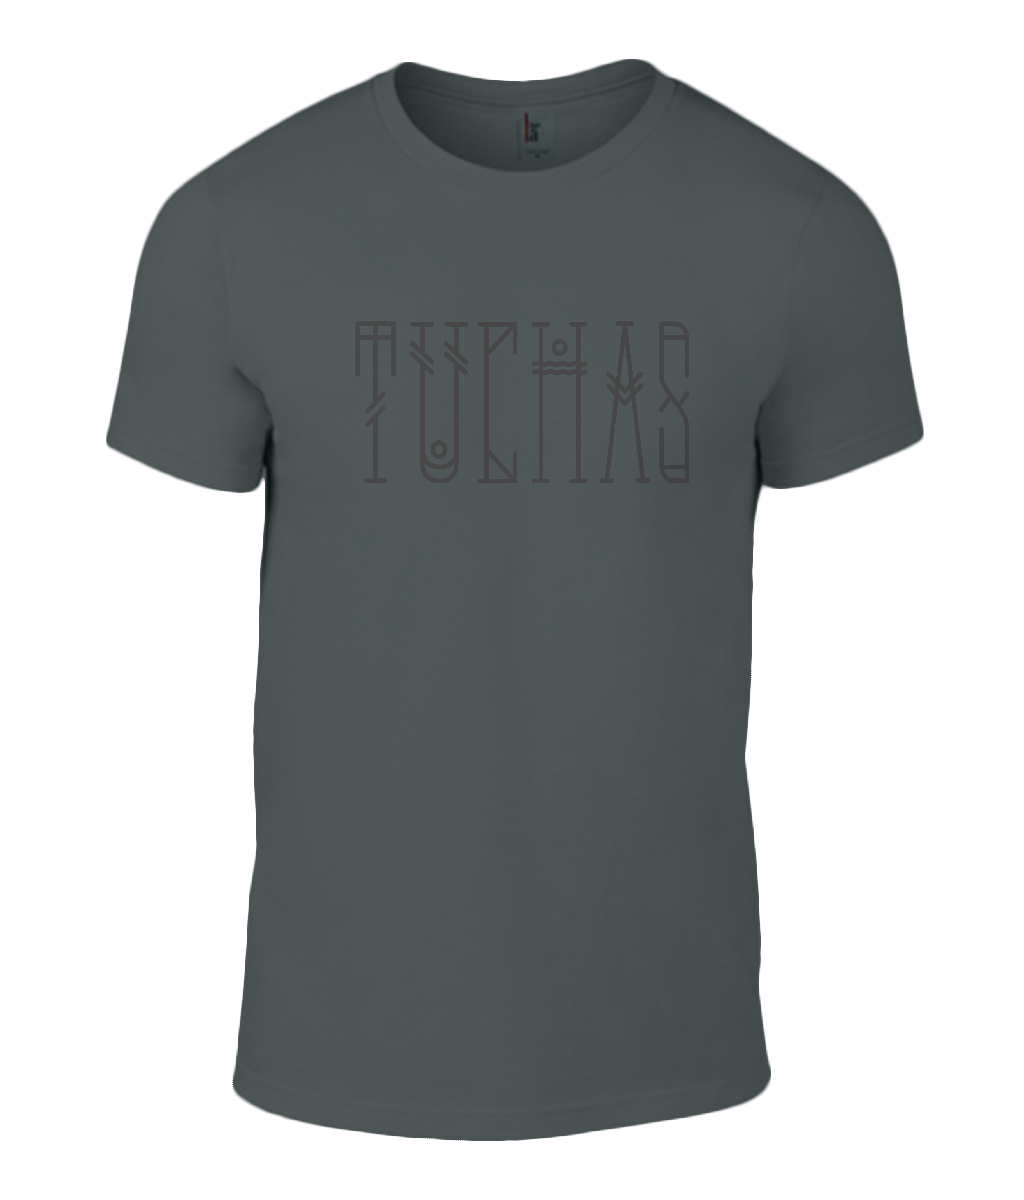 Round Neck T-Shirt - Tuchas - Lokshen Pudding UK - Black